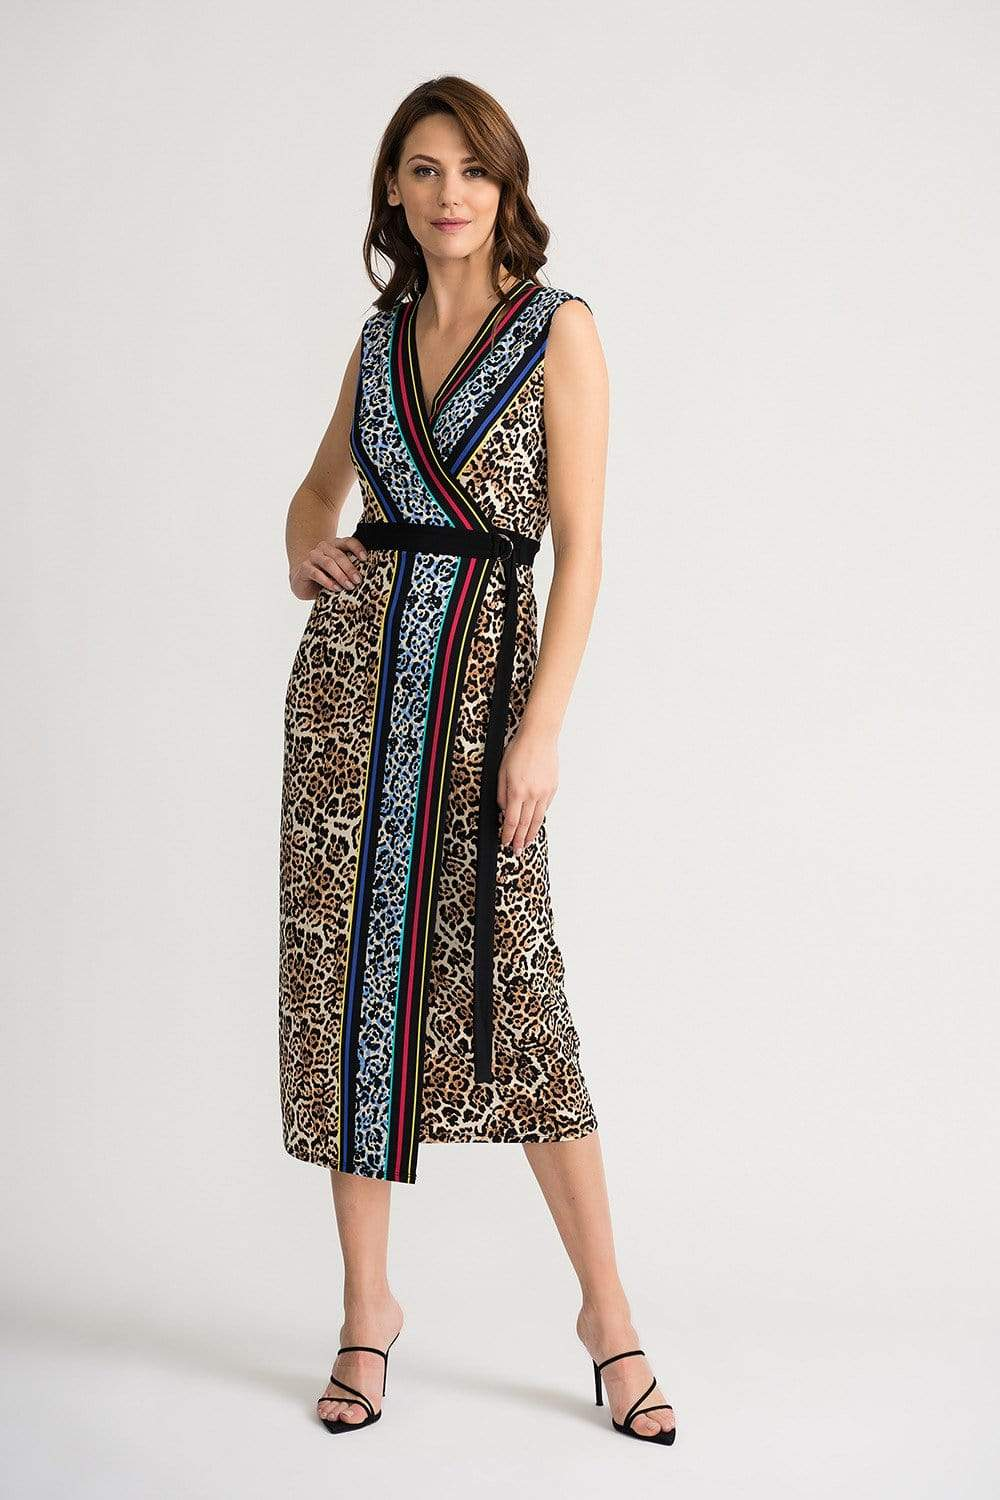 Joseph Ribkoff Dresses Joseph Ribkoff Multi Printed 202148 Dress izzi-of-baslow